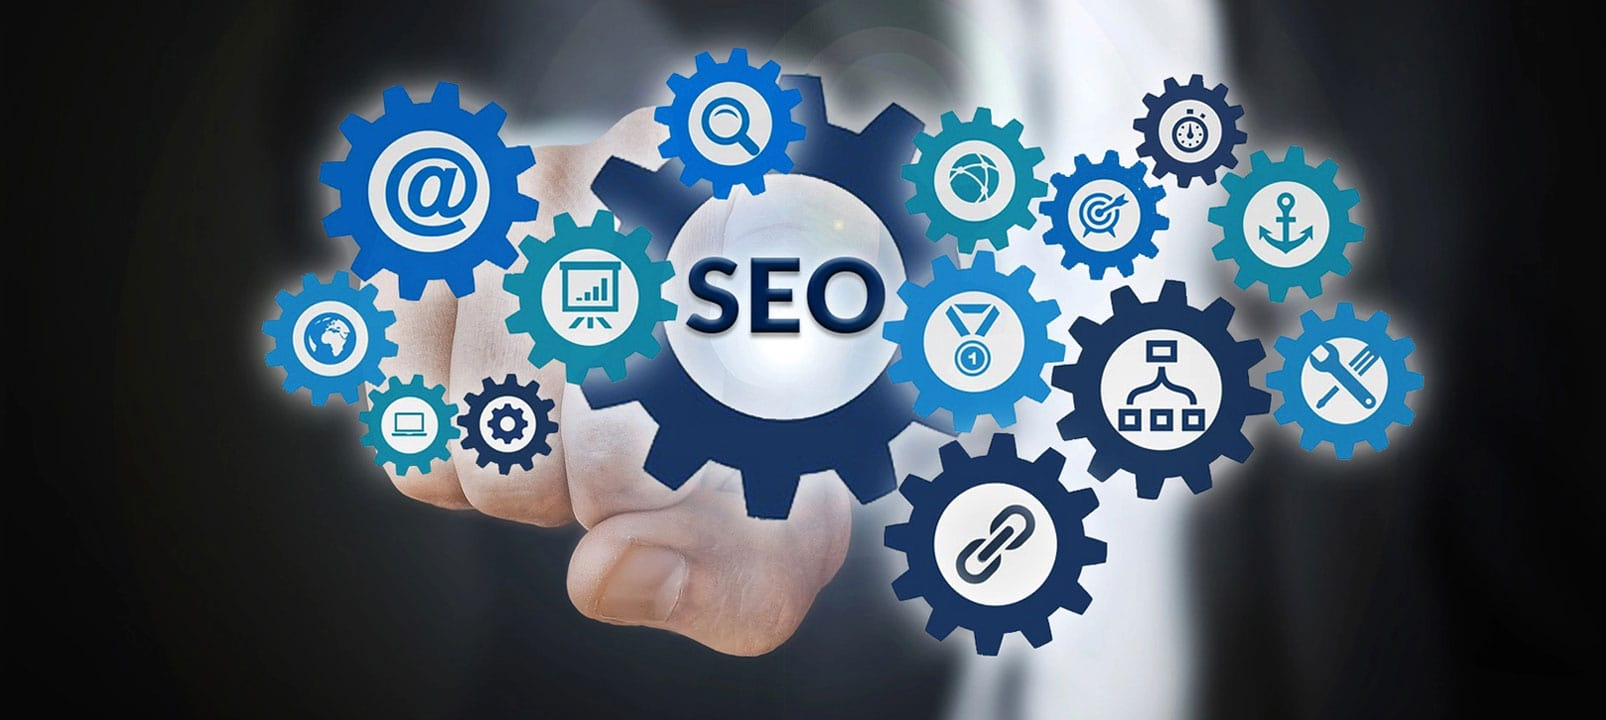 seo services in birmingham